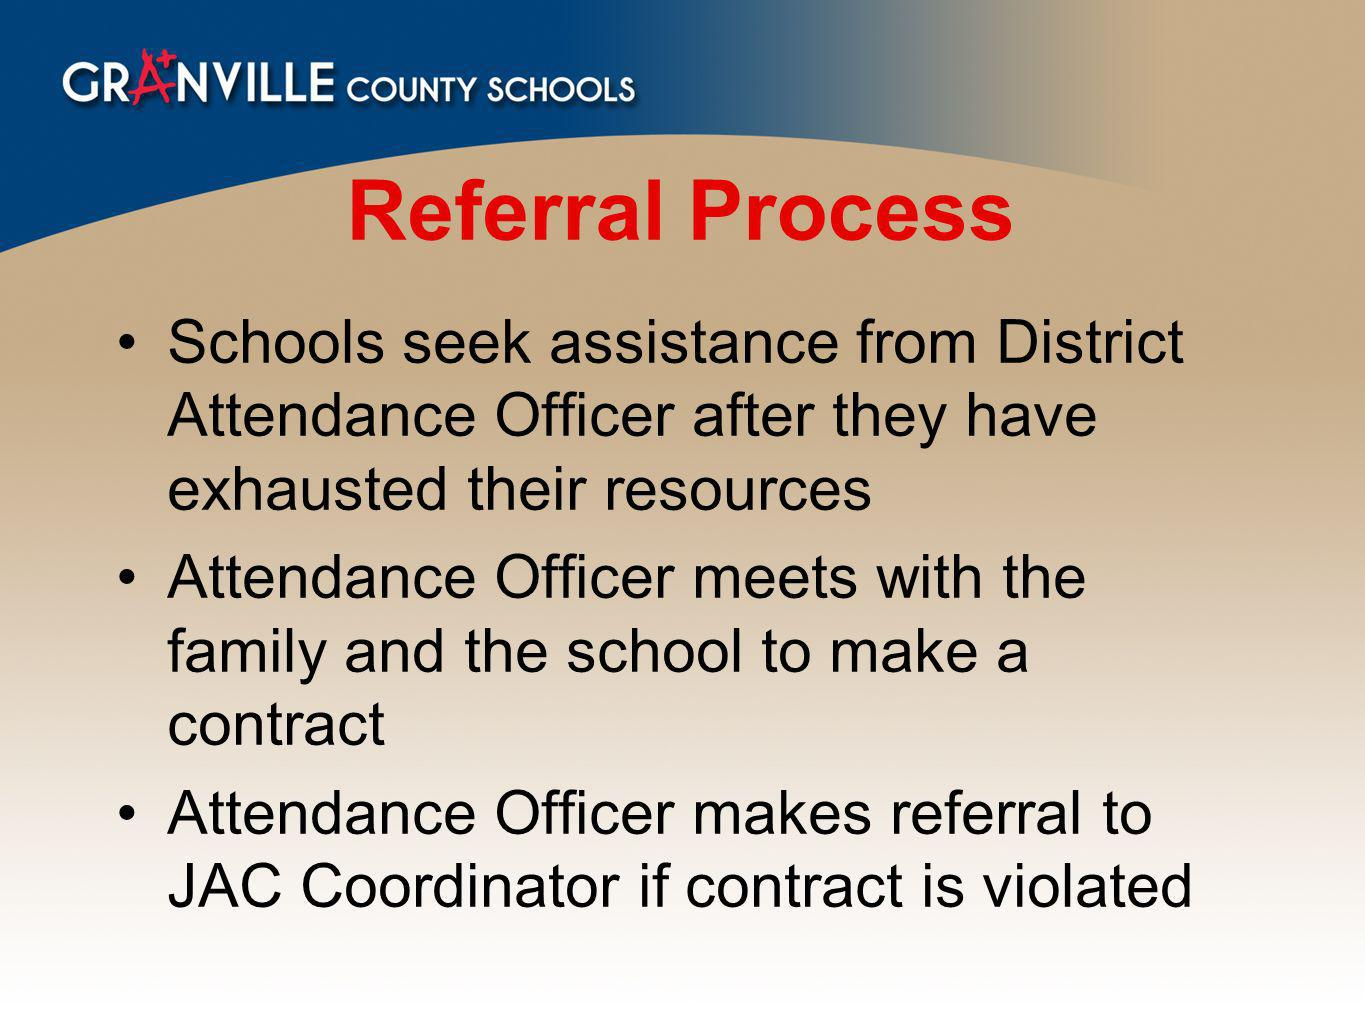 Referral Process Schools seek assistance from District Attendance Officer after they have exhausted their resources Attendance Officer meets with the family and the school to make a contract Attendance Officer makes referral to JAC Coordinator if contract is violated